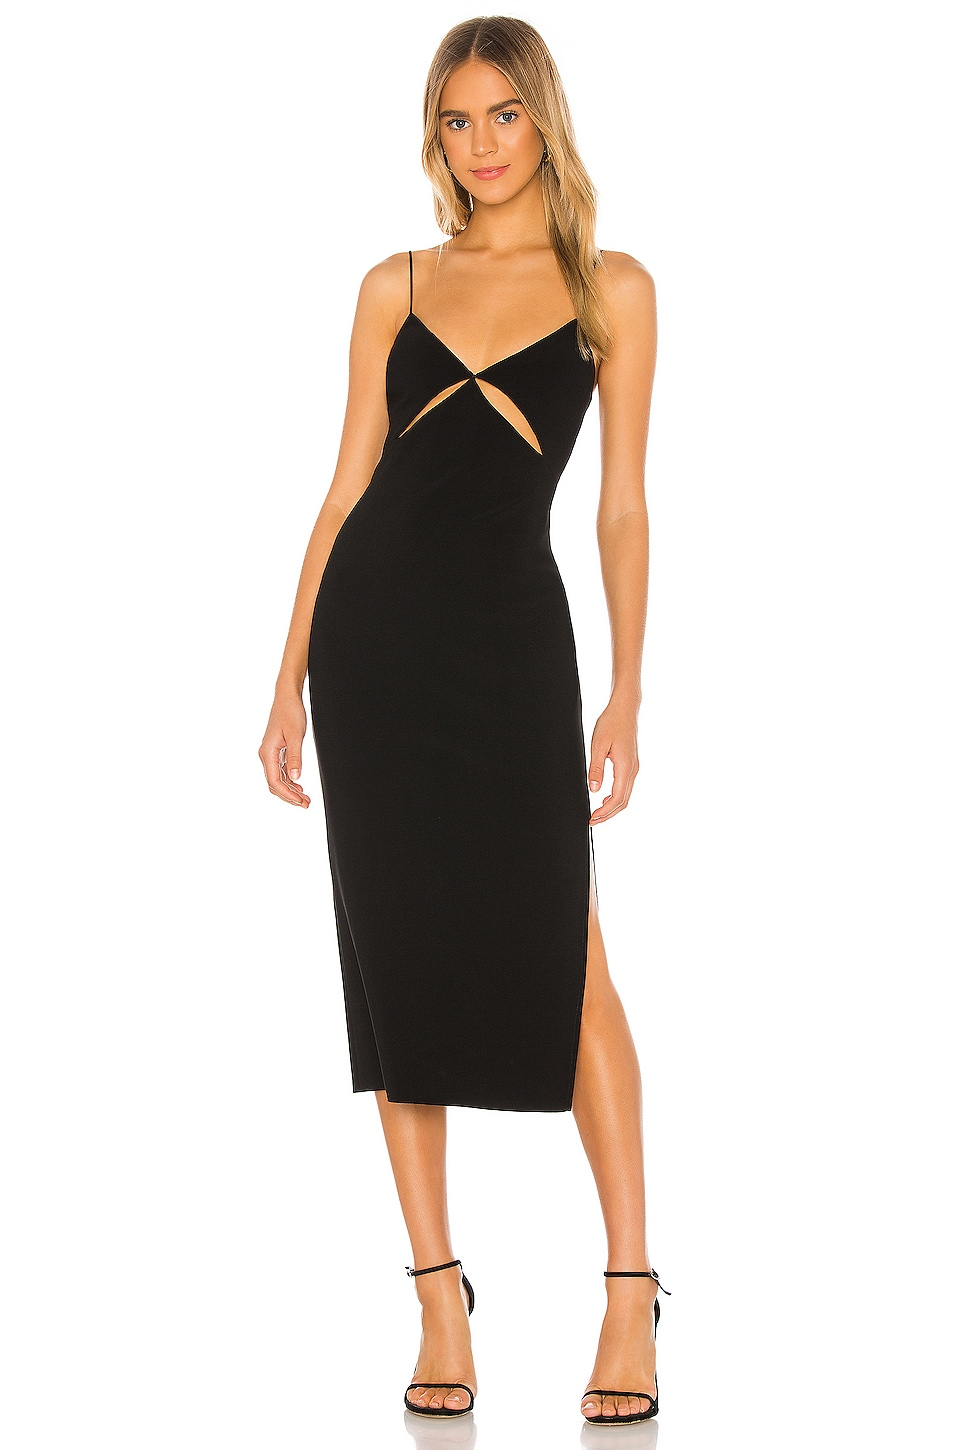 Emerald Avenue Midi Dress             BEC&BRIDGE                                                                                                       CA$ 399.73 7